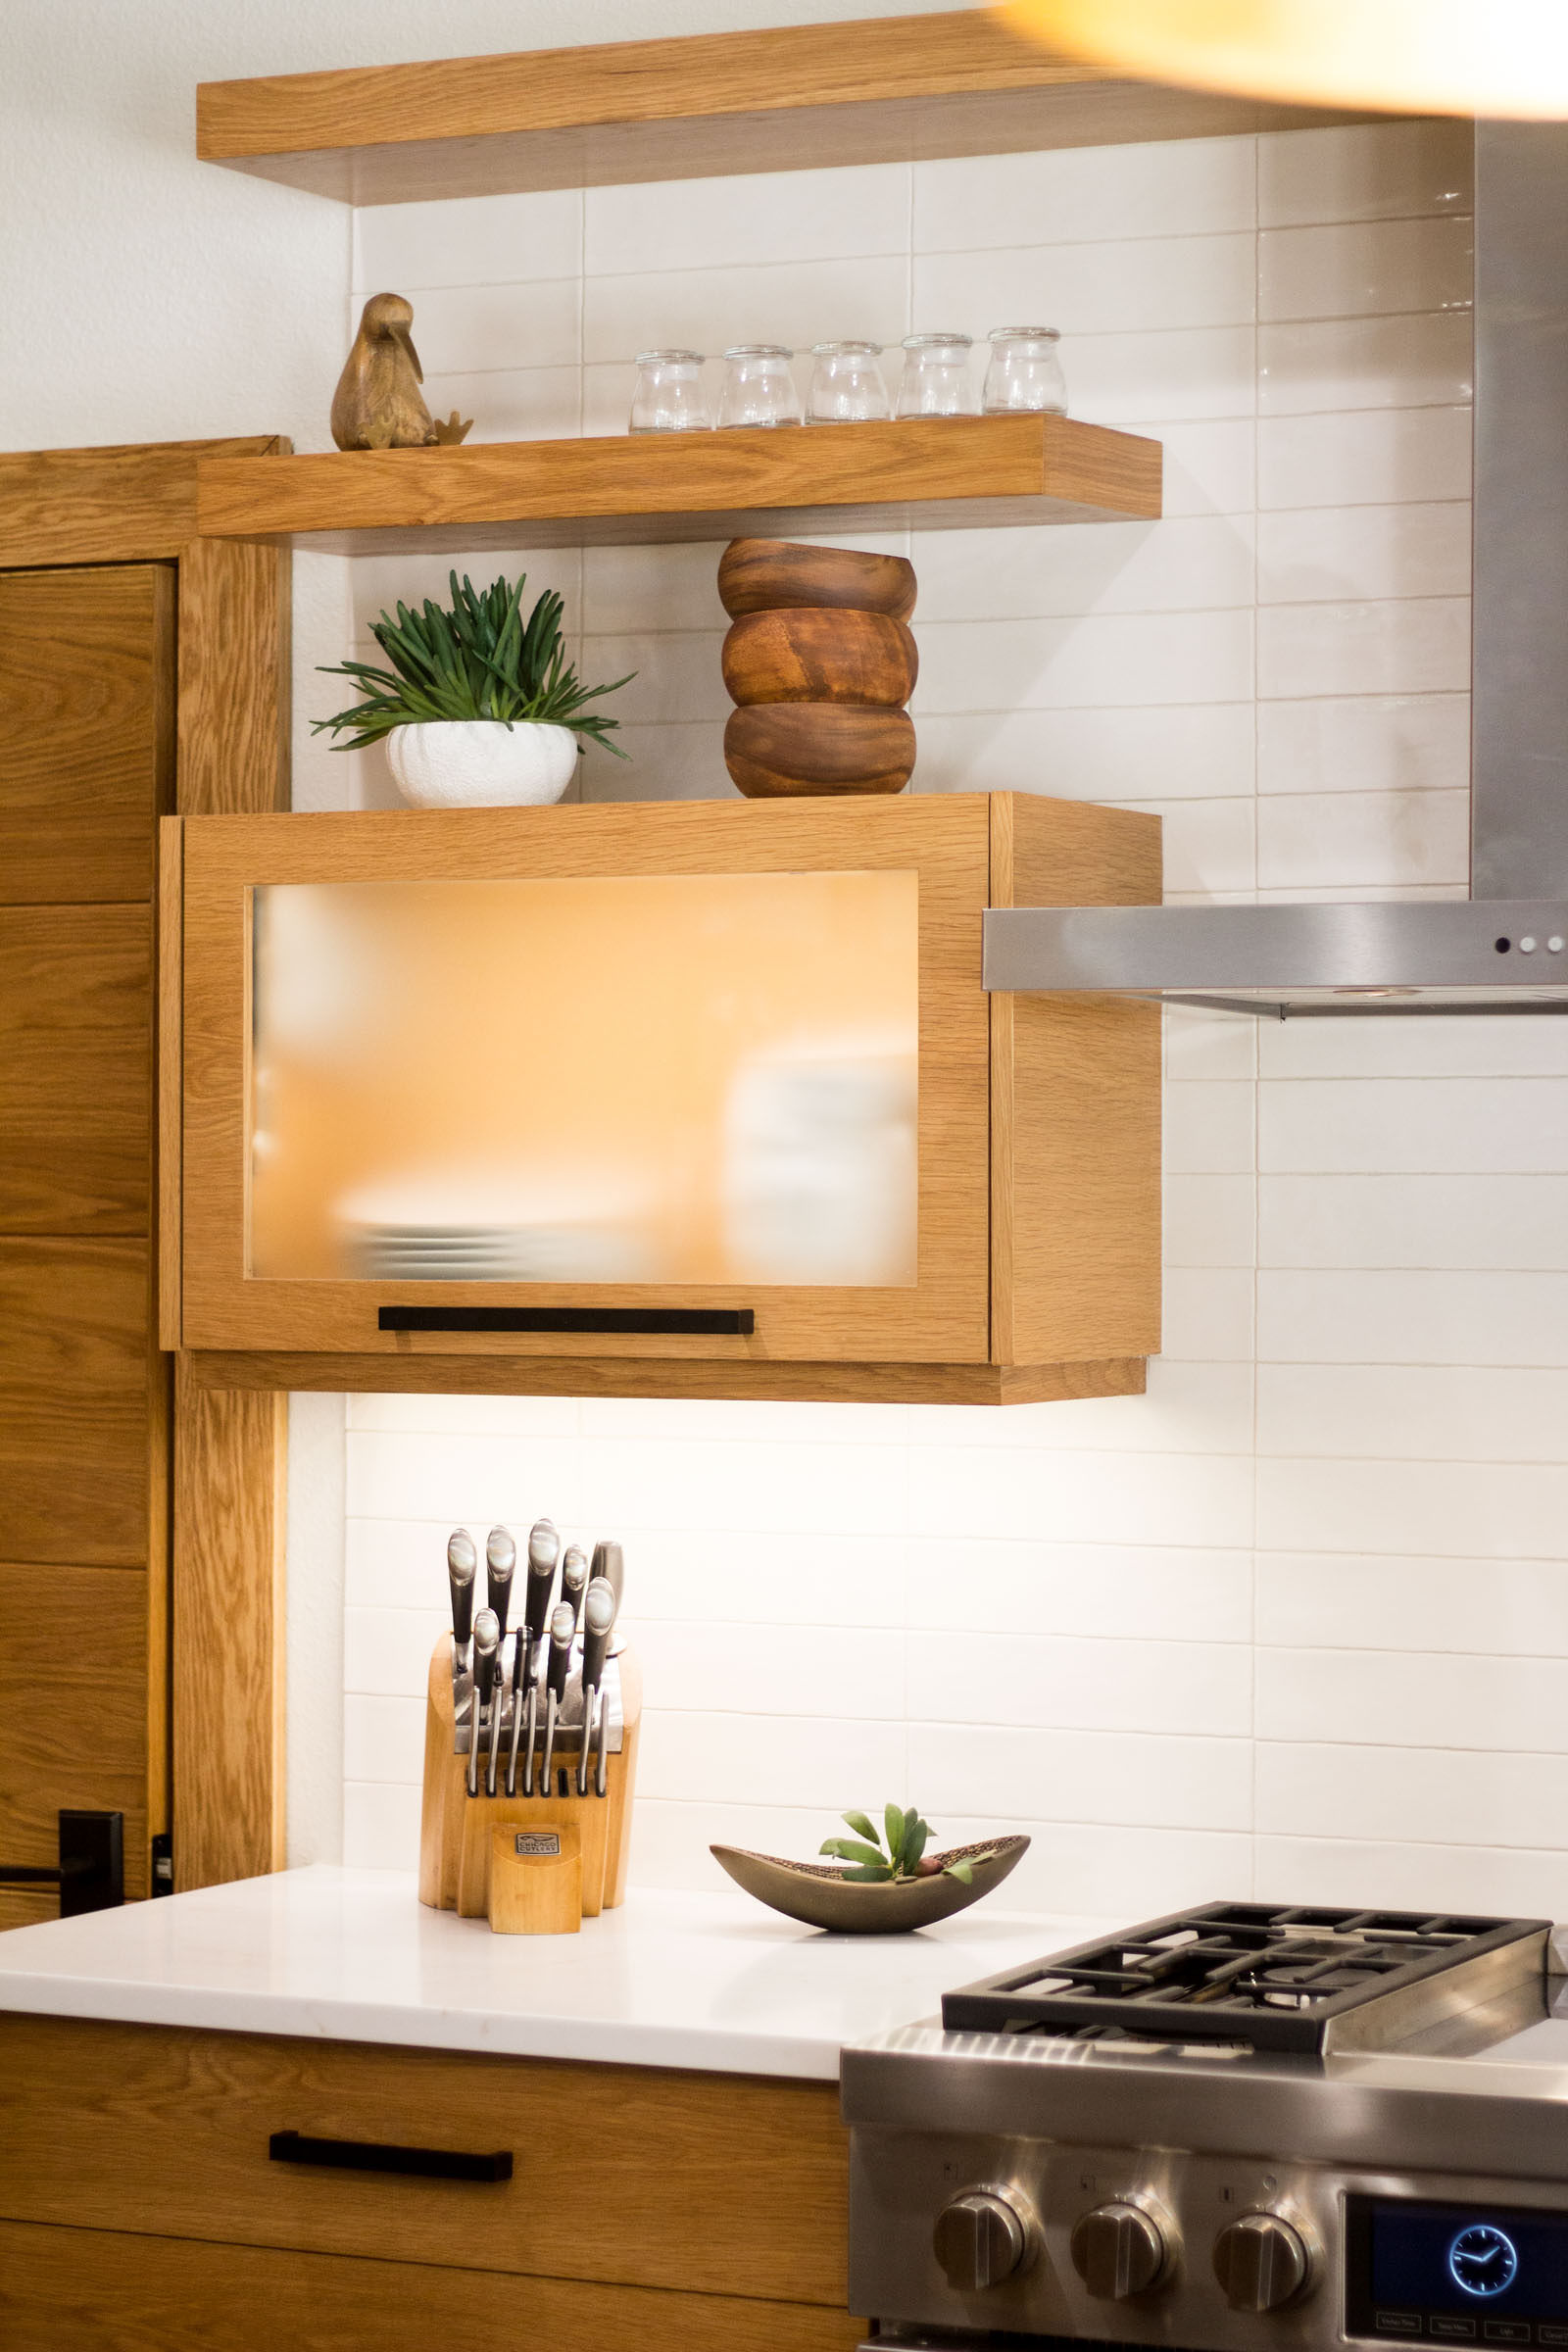 Stainless steel gas cooktop, exposed shelves, succulents, vertical lift cabinets made of blonde wood